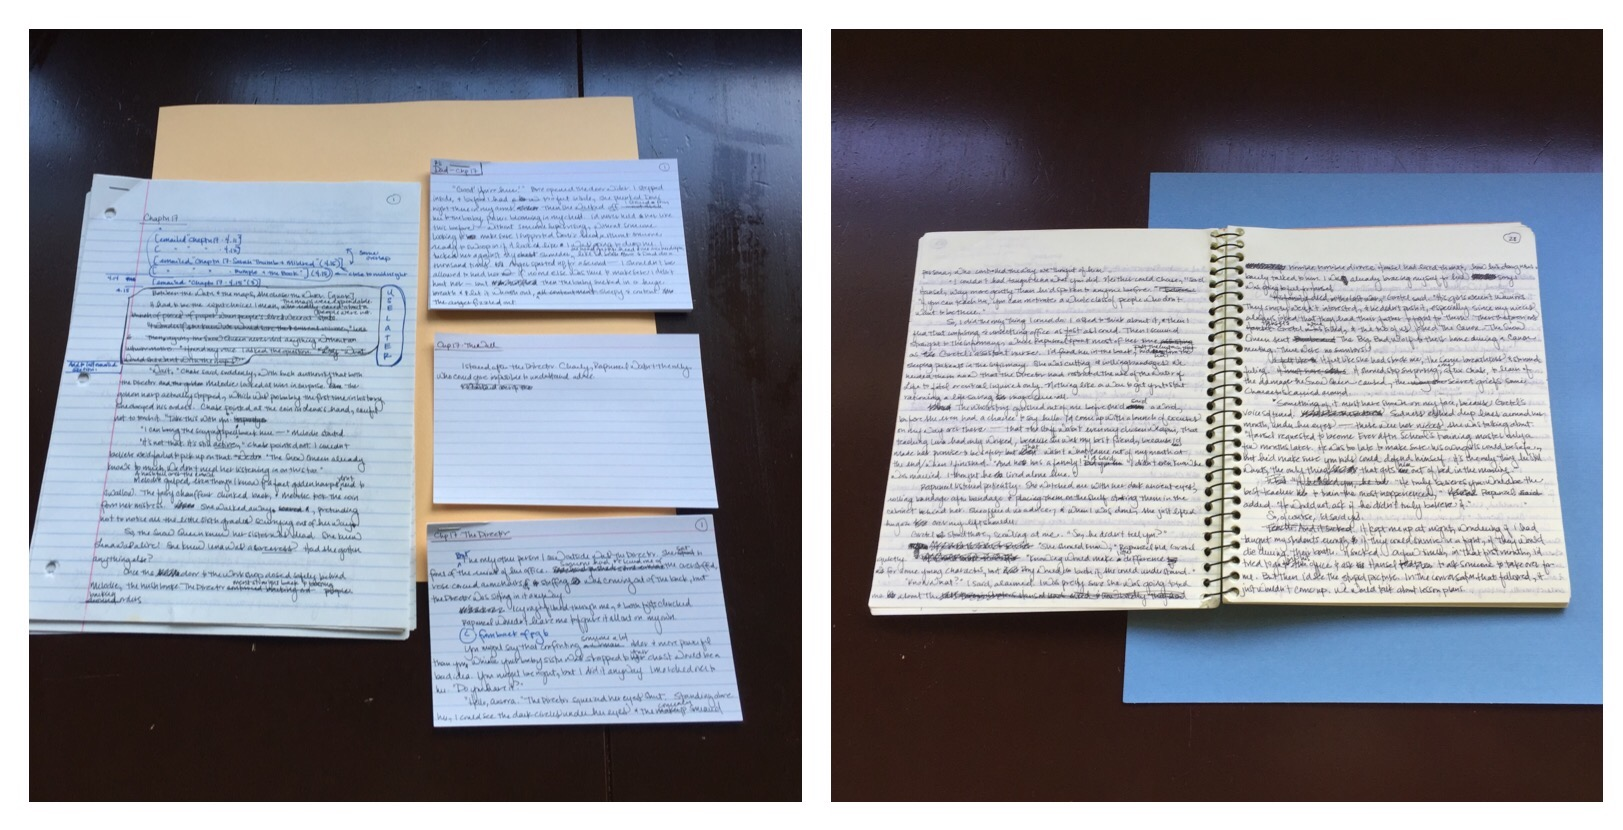 There is also no set method for writing a book. For OEAE, sometimes, I wrote on the computer, and sometimes, a notebook. Other times, I was in a looseleaf paper mood, and every once and a while, I wrote a scene on an index card.